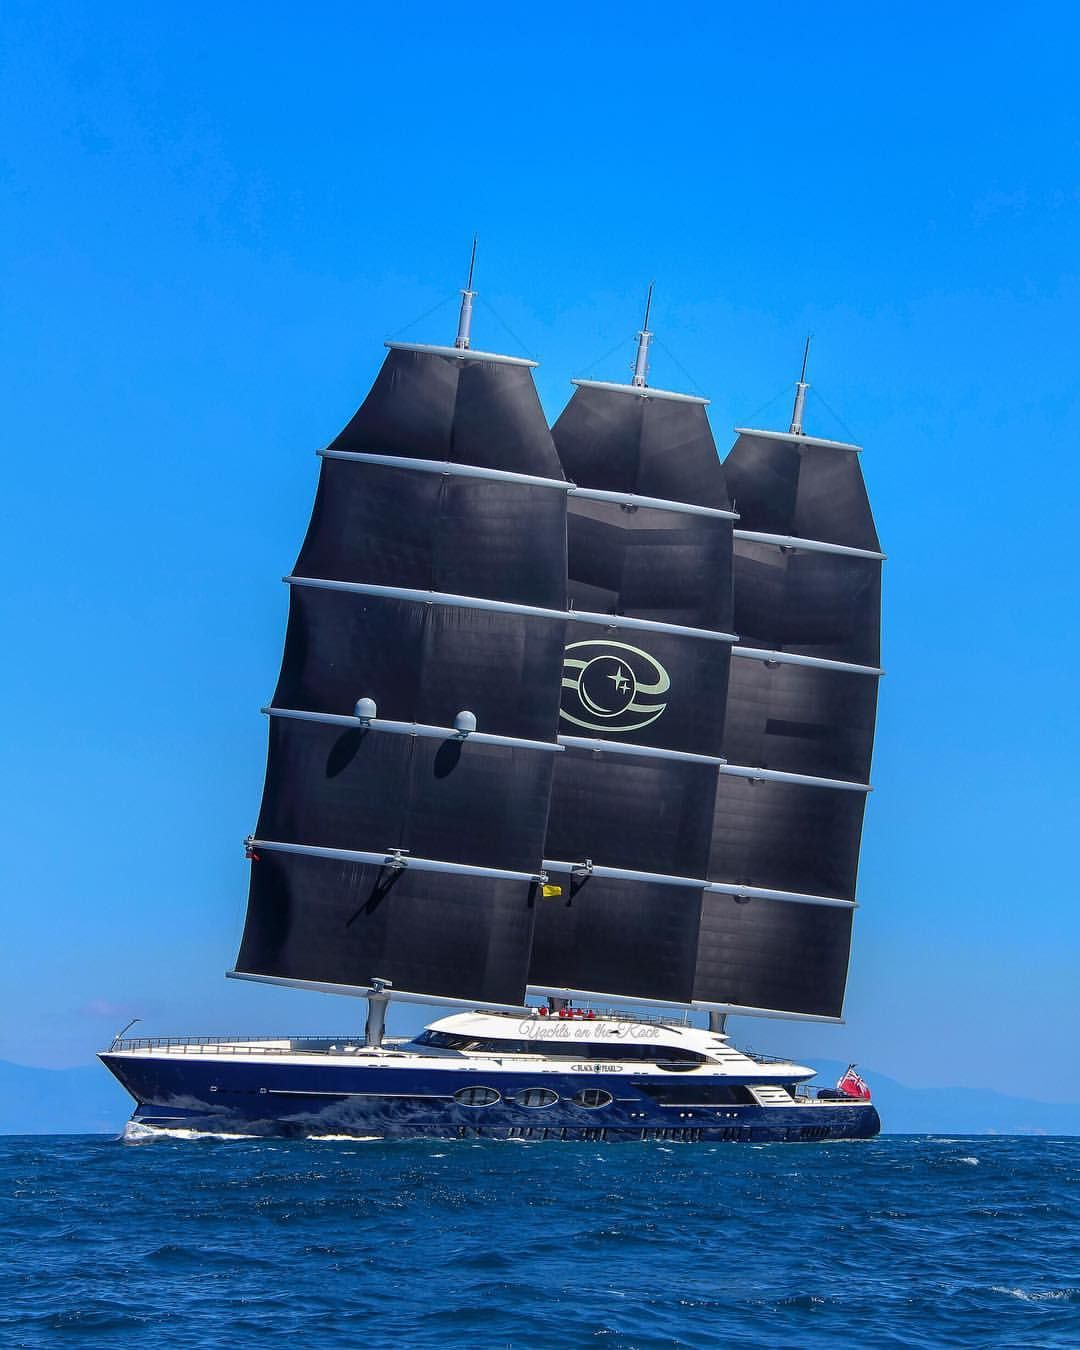 A further cruising shot of S/Y Black Pearl taken on her maiden